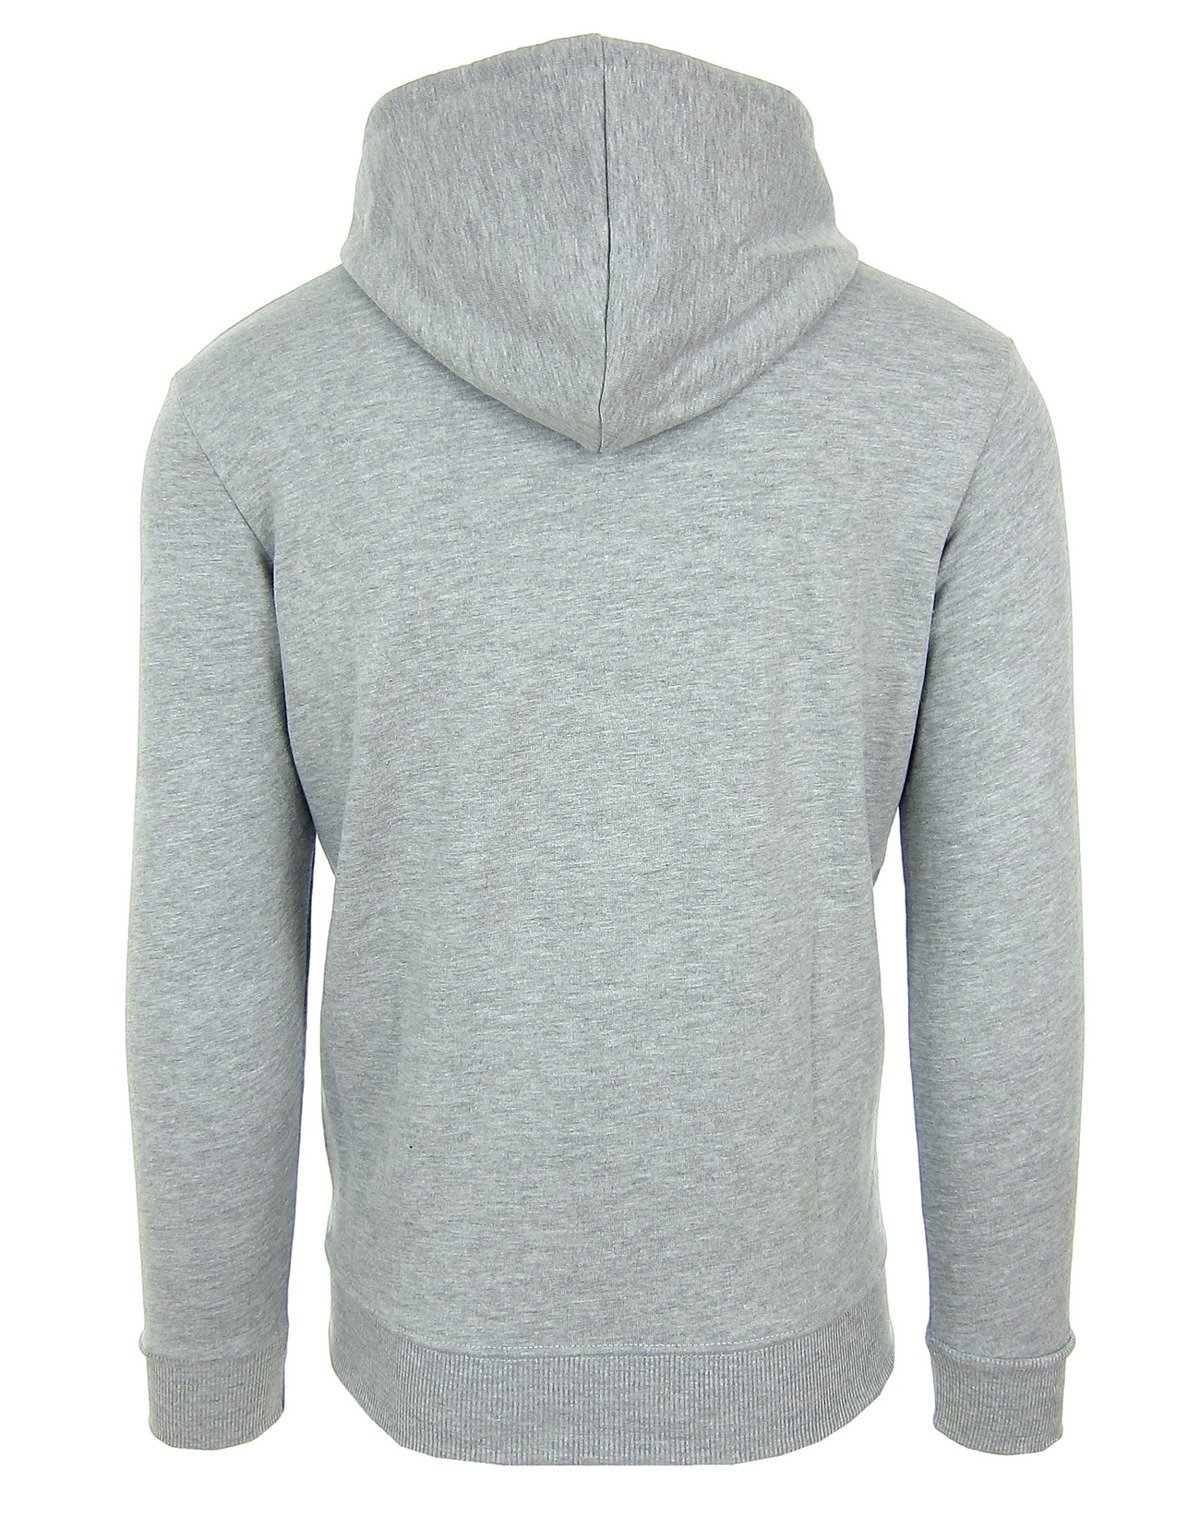 timeless design 59998 c8336 TRUSSARDI Herren Men Kapuzenpullover Hoodie Sweatshirt Grau Grey Made in  Italy